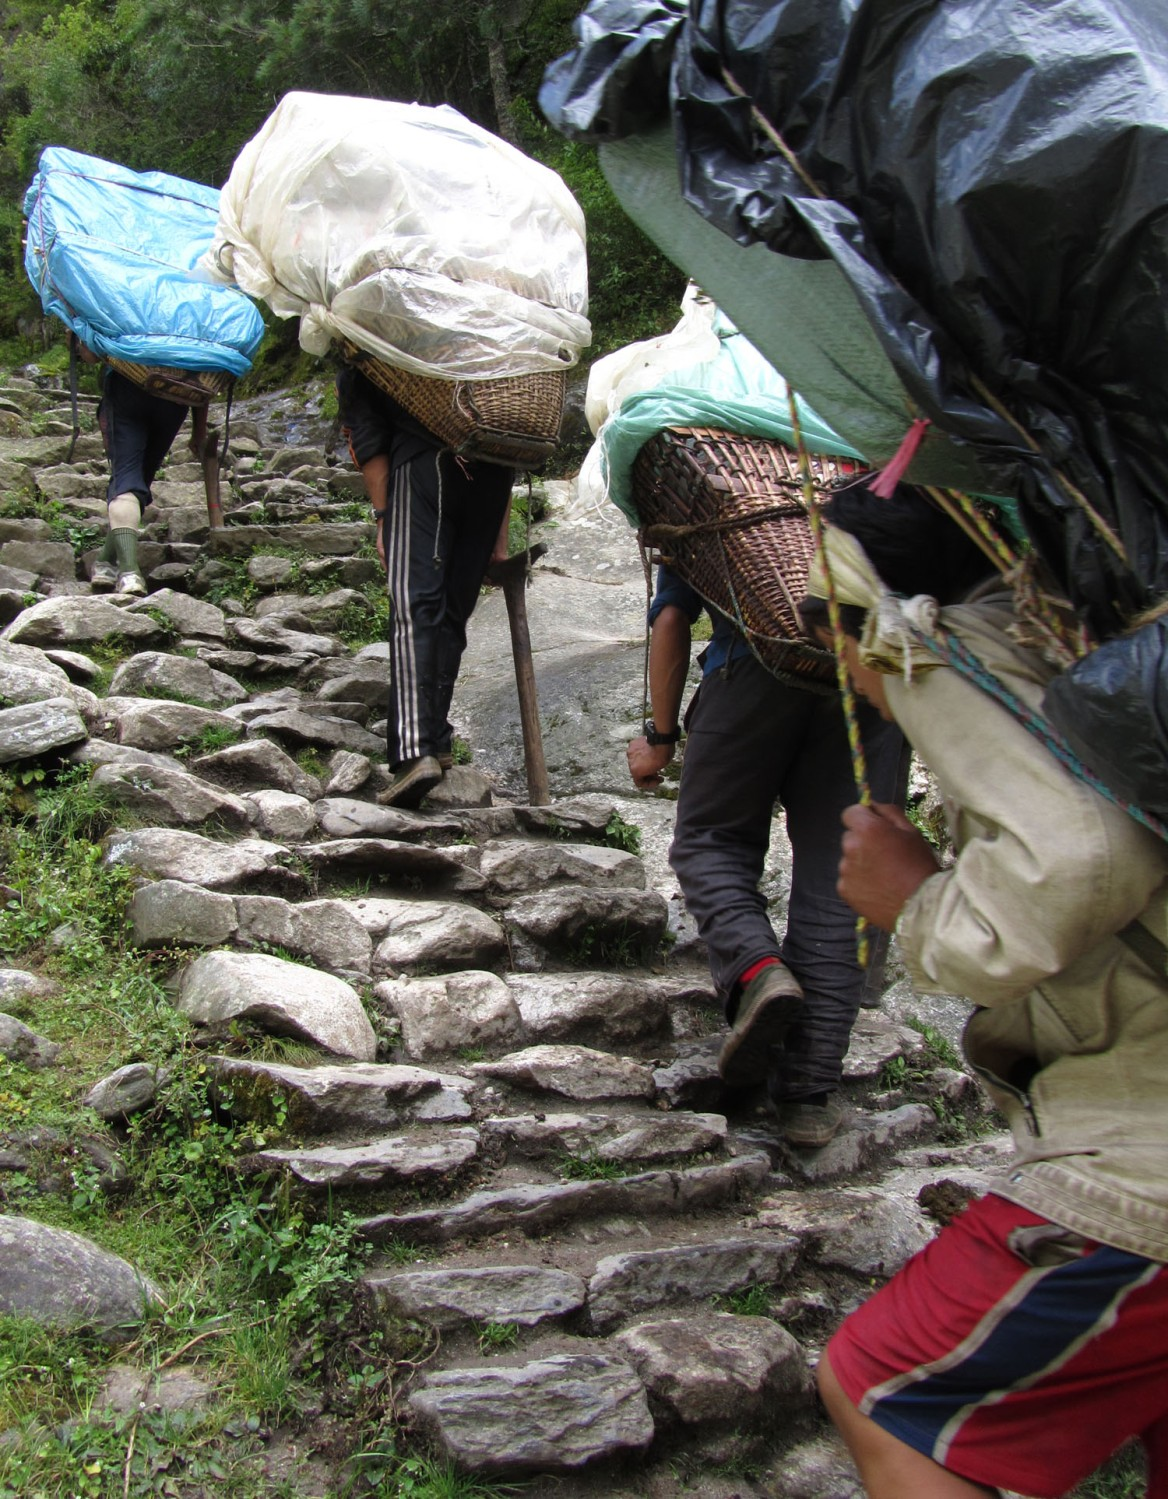 Nepal-Everest-Region-Trek-Day-08-Porters